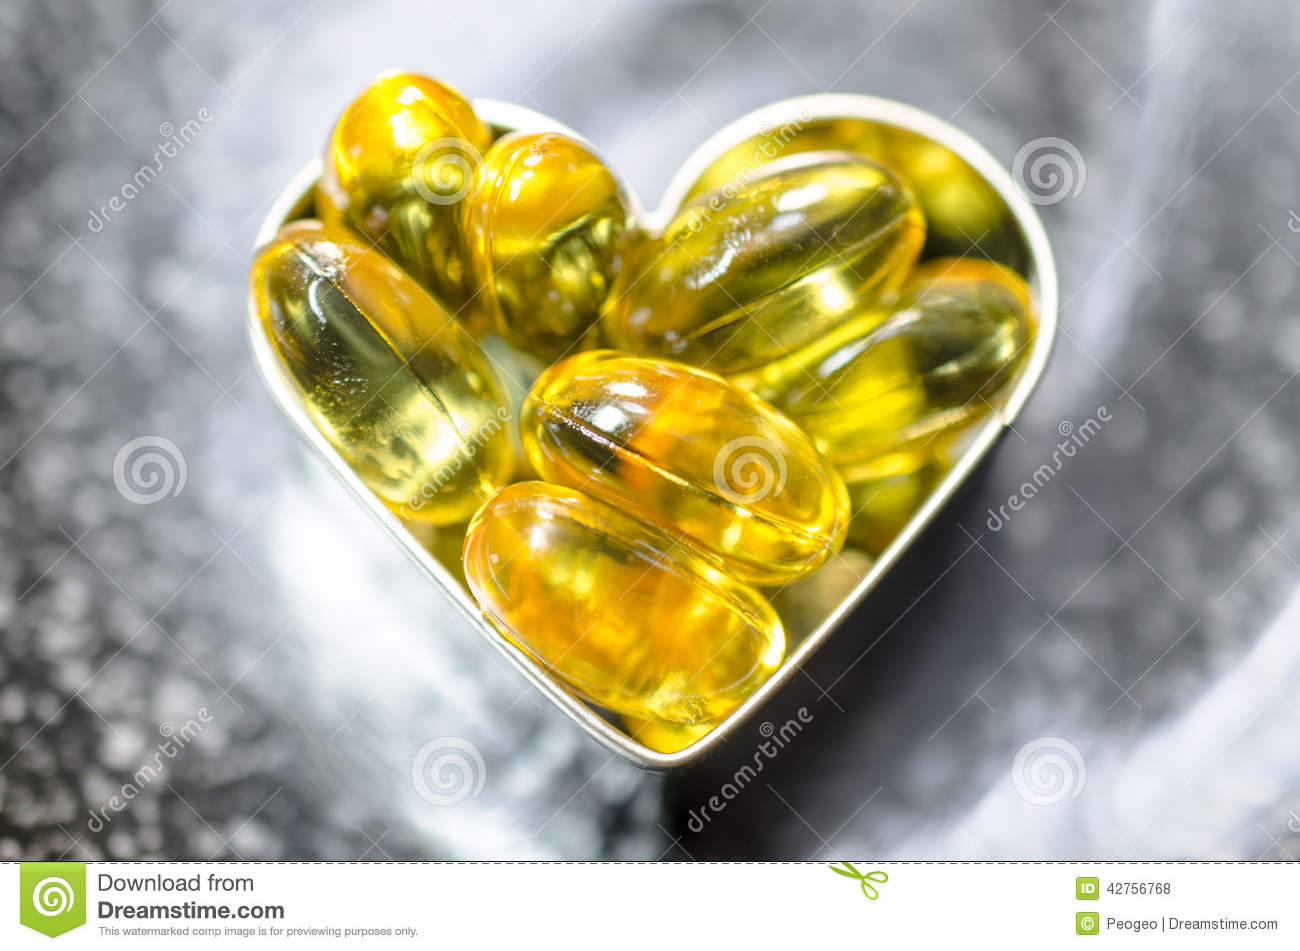 Fish oil capsule on heart shape box on black plate